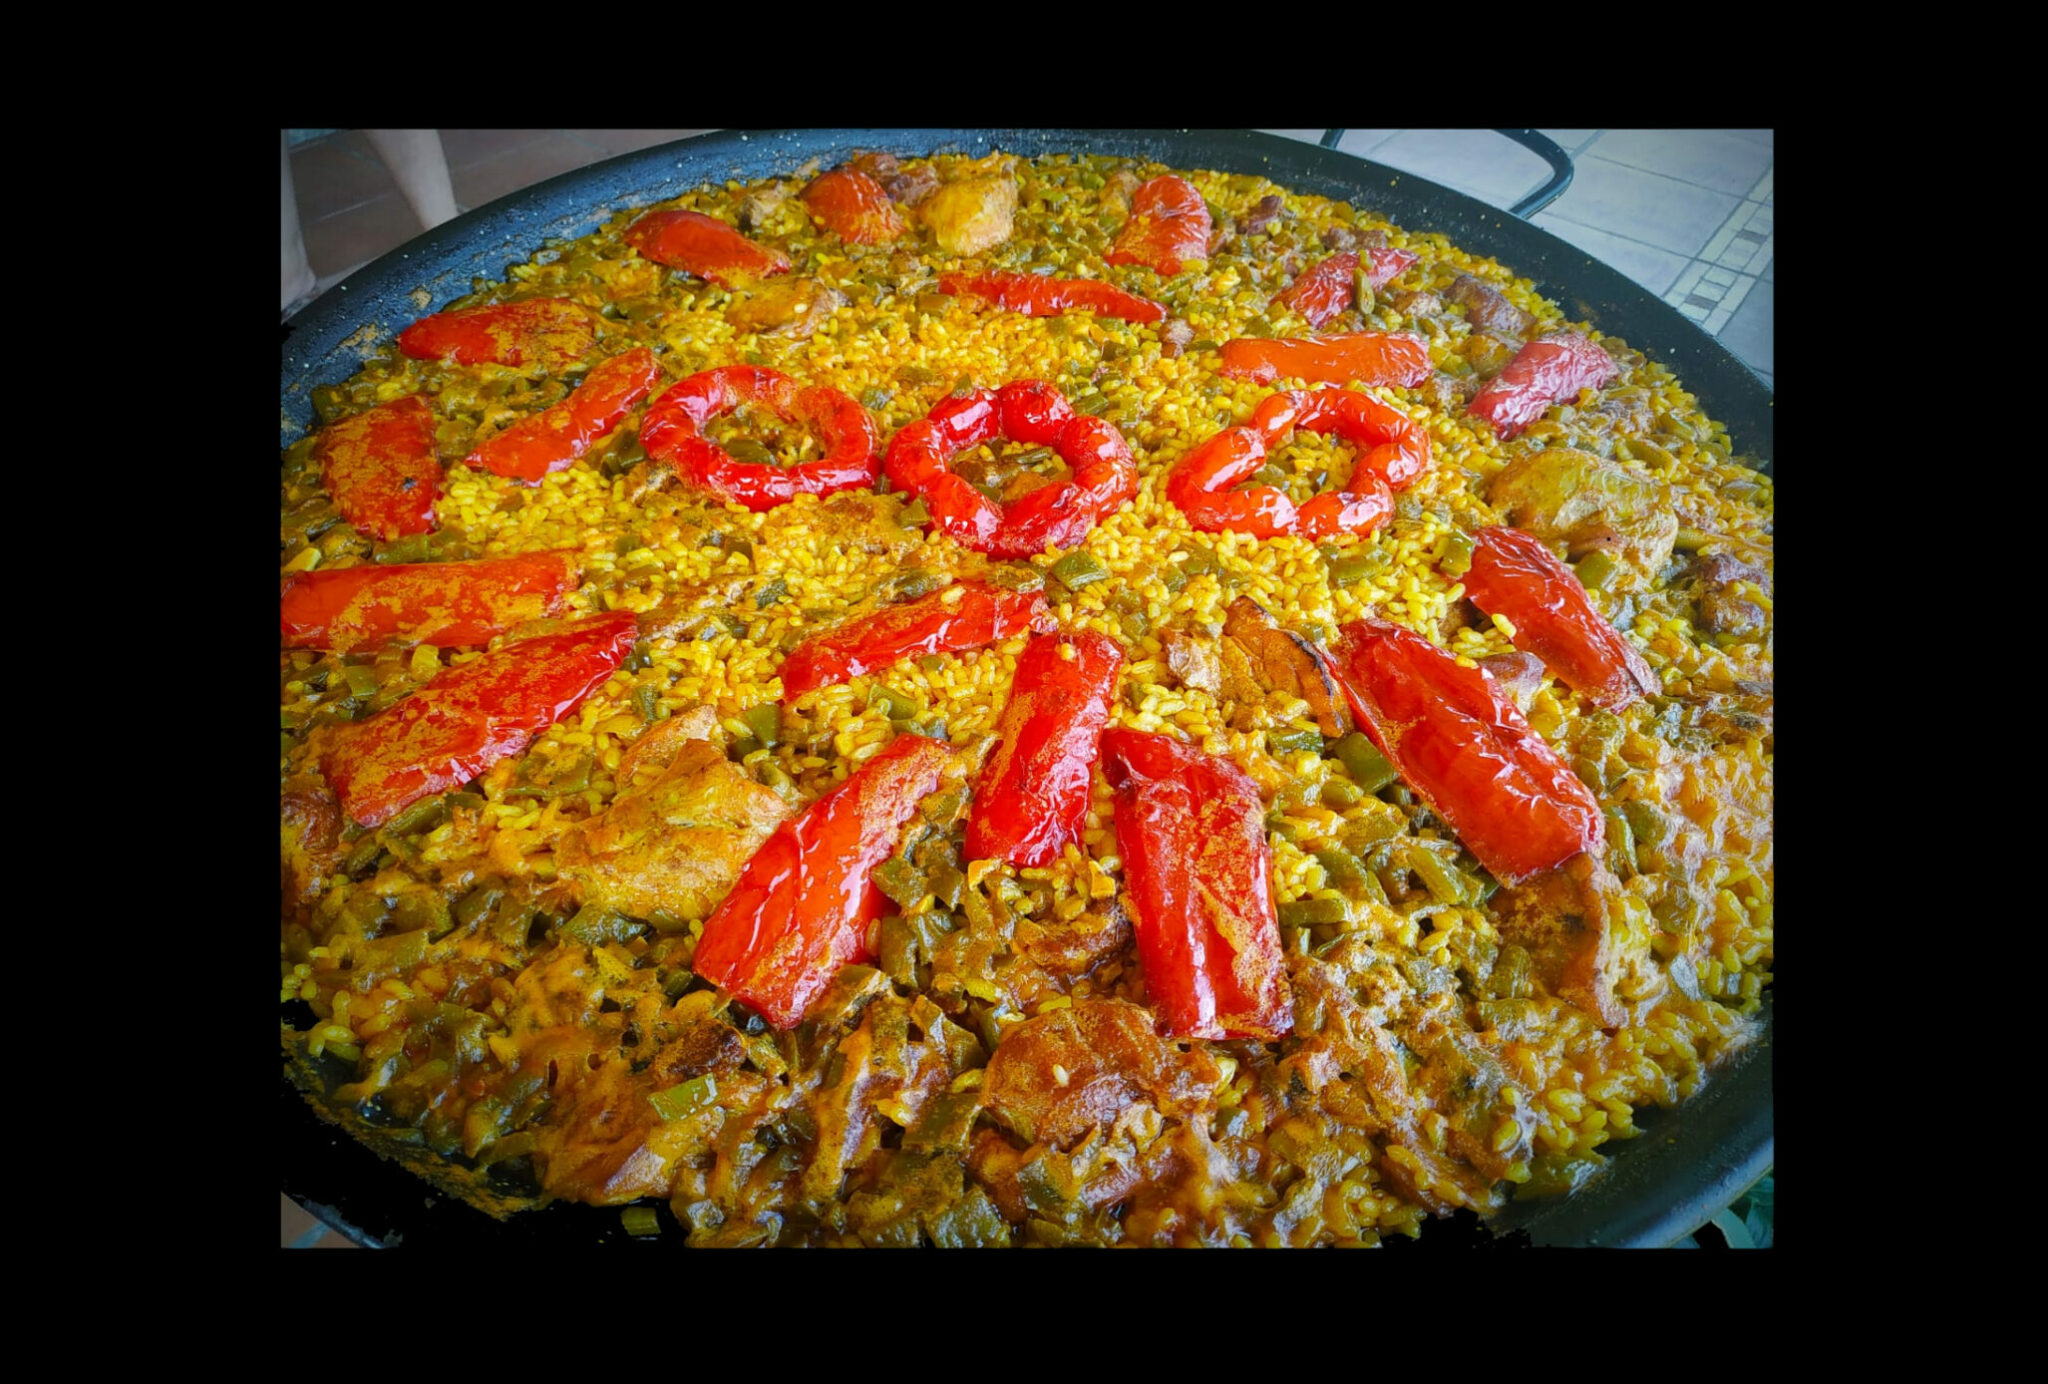 Our Paellas